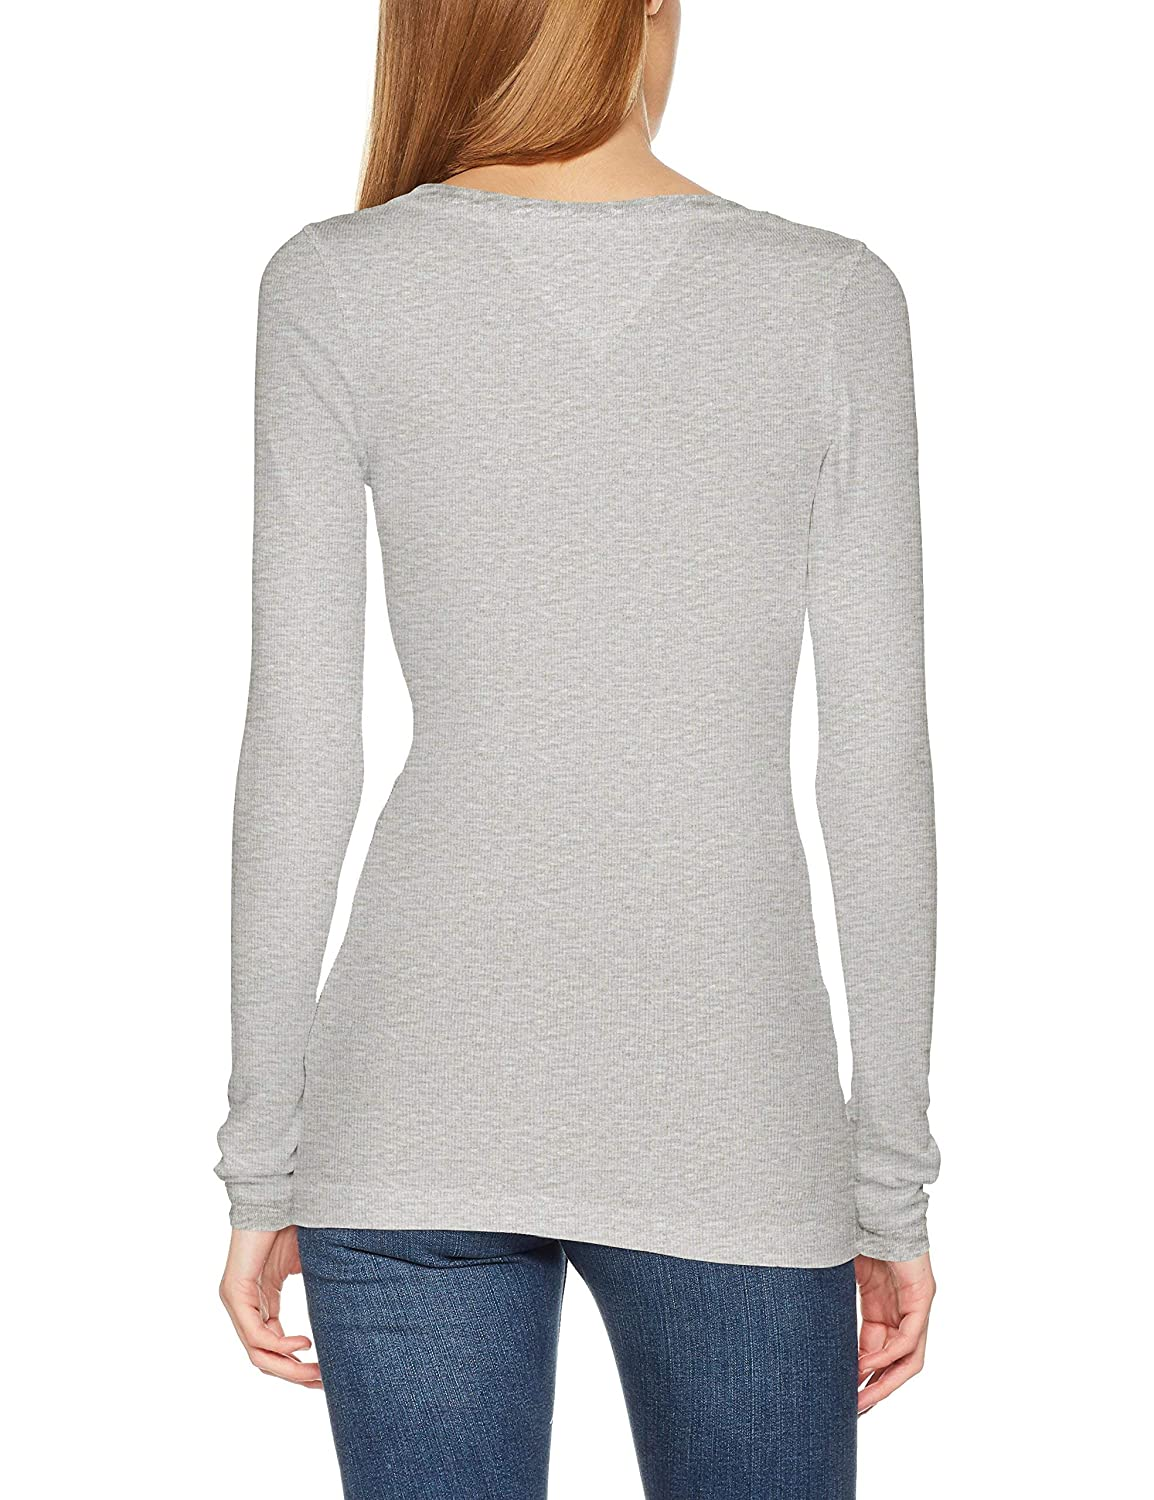 e0655a452 Tommy Hilfiger Women's Long Sleeve Original Ribbed Shirt at Amazon Women's  Clothing store: